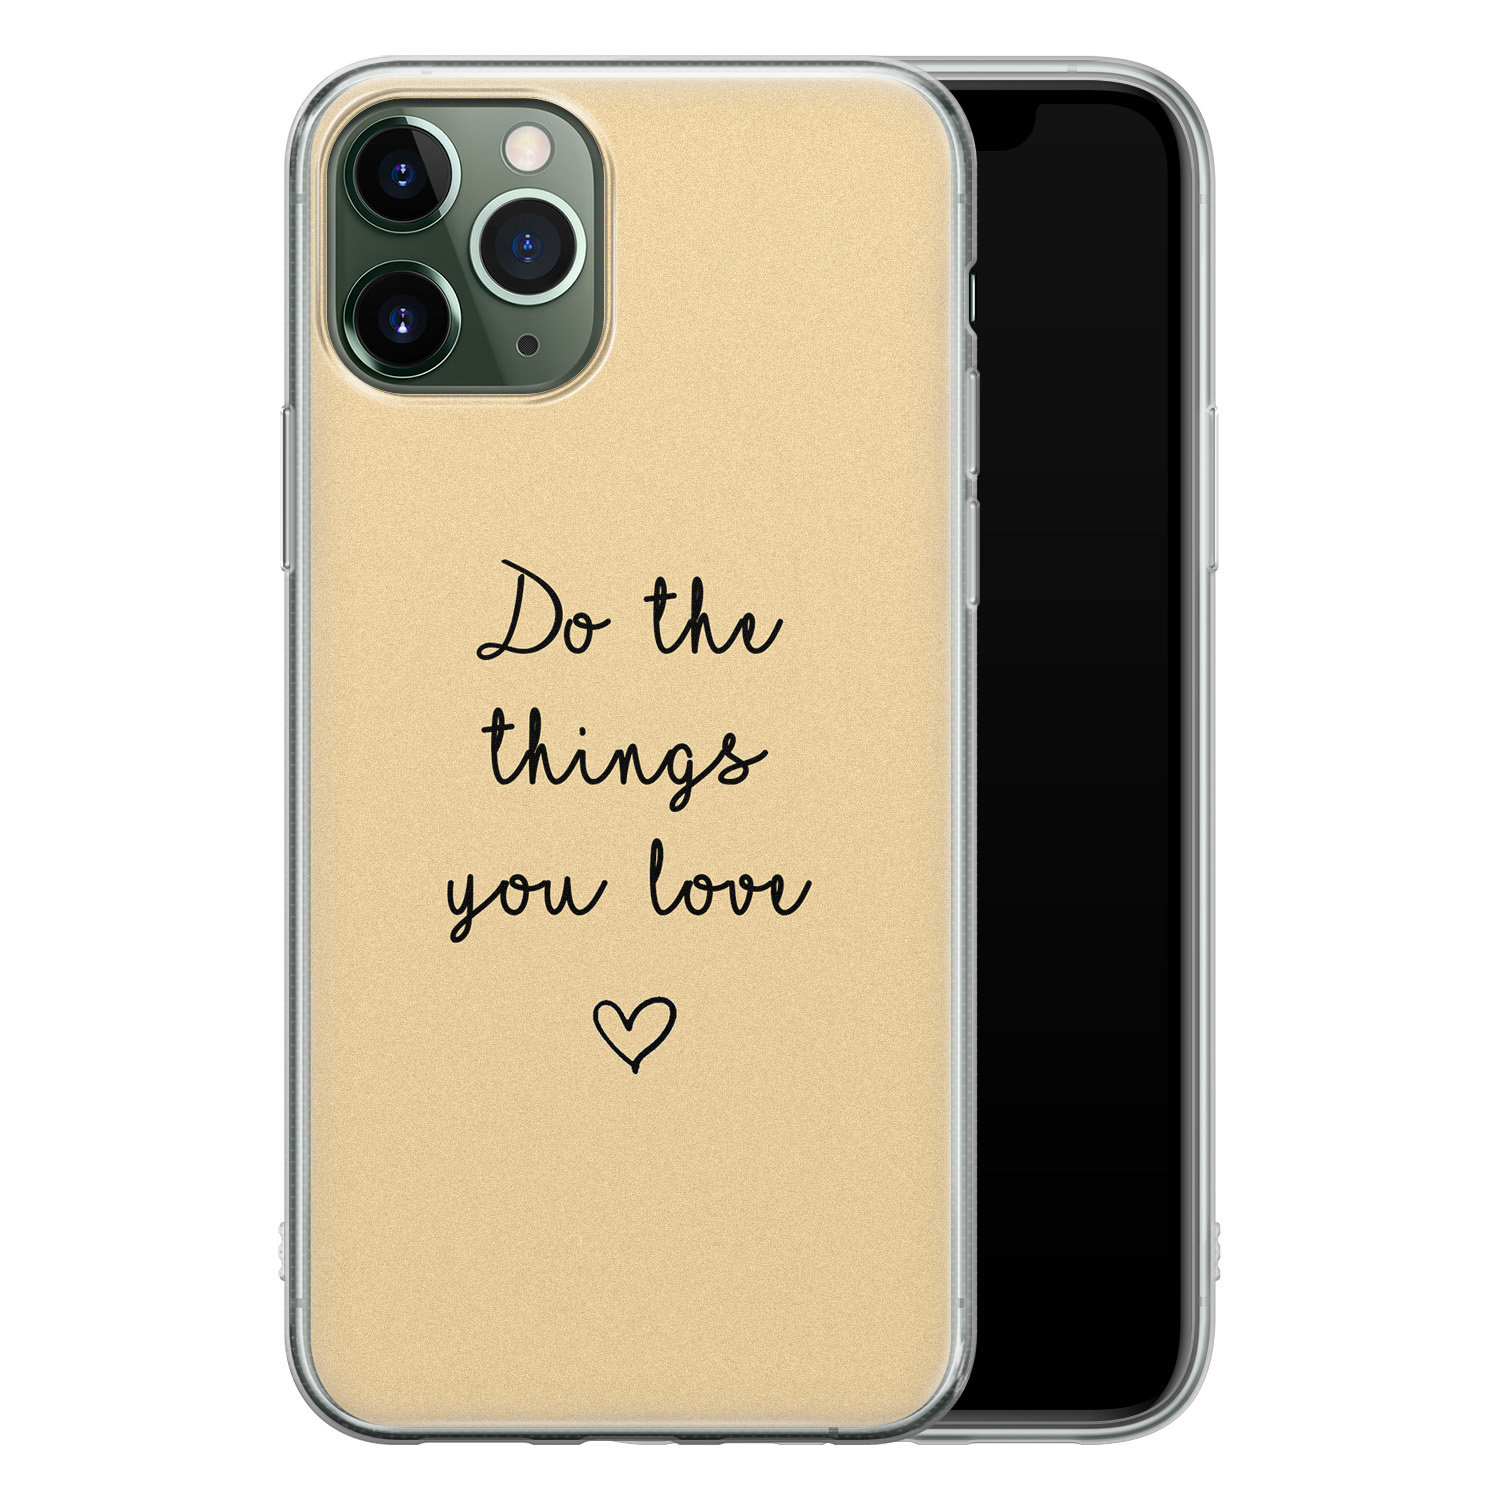 iPhone 11 Pro siliconen hoesje - Do the things you love